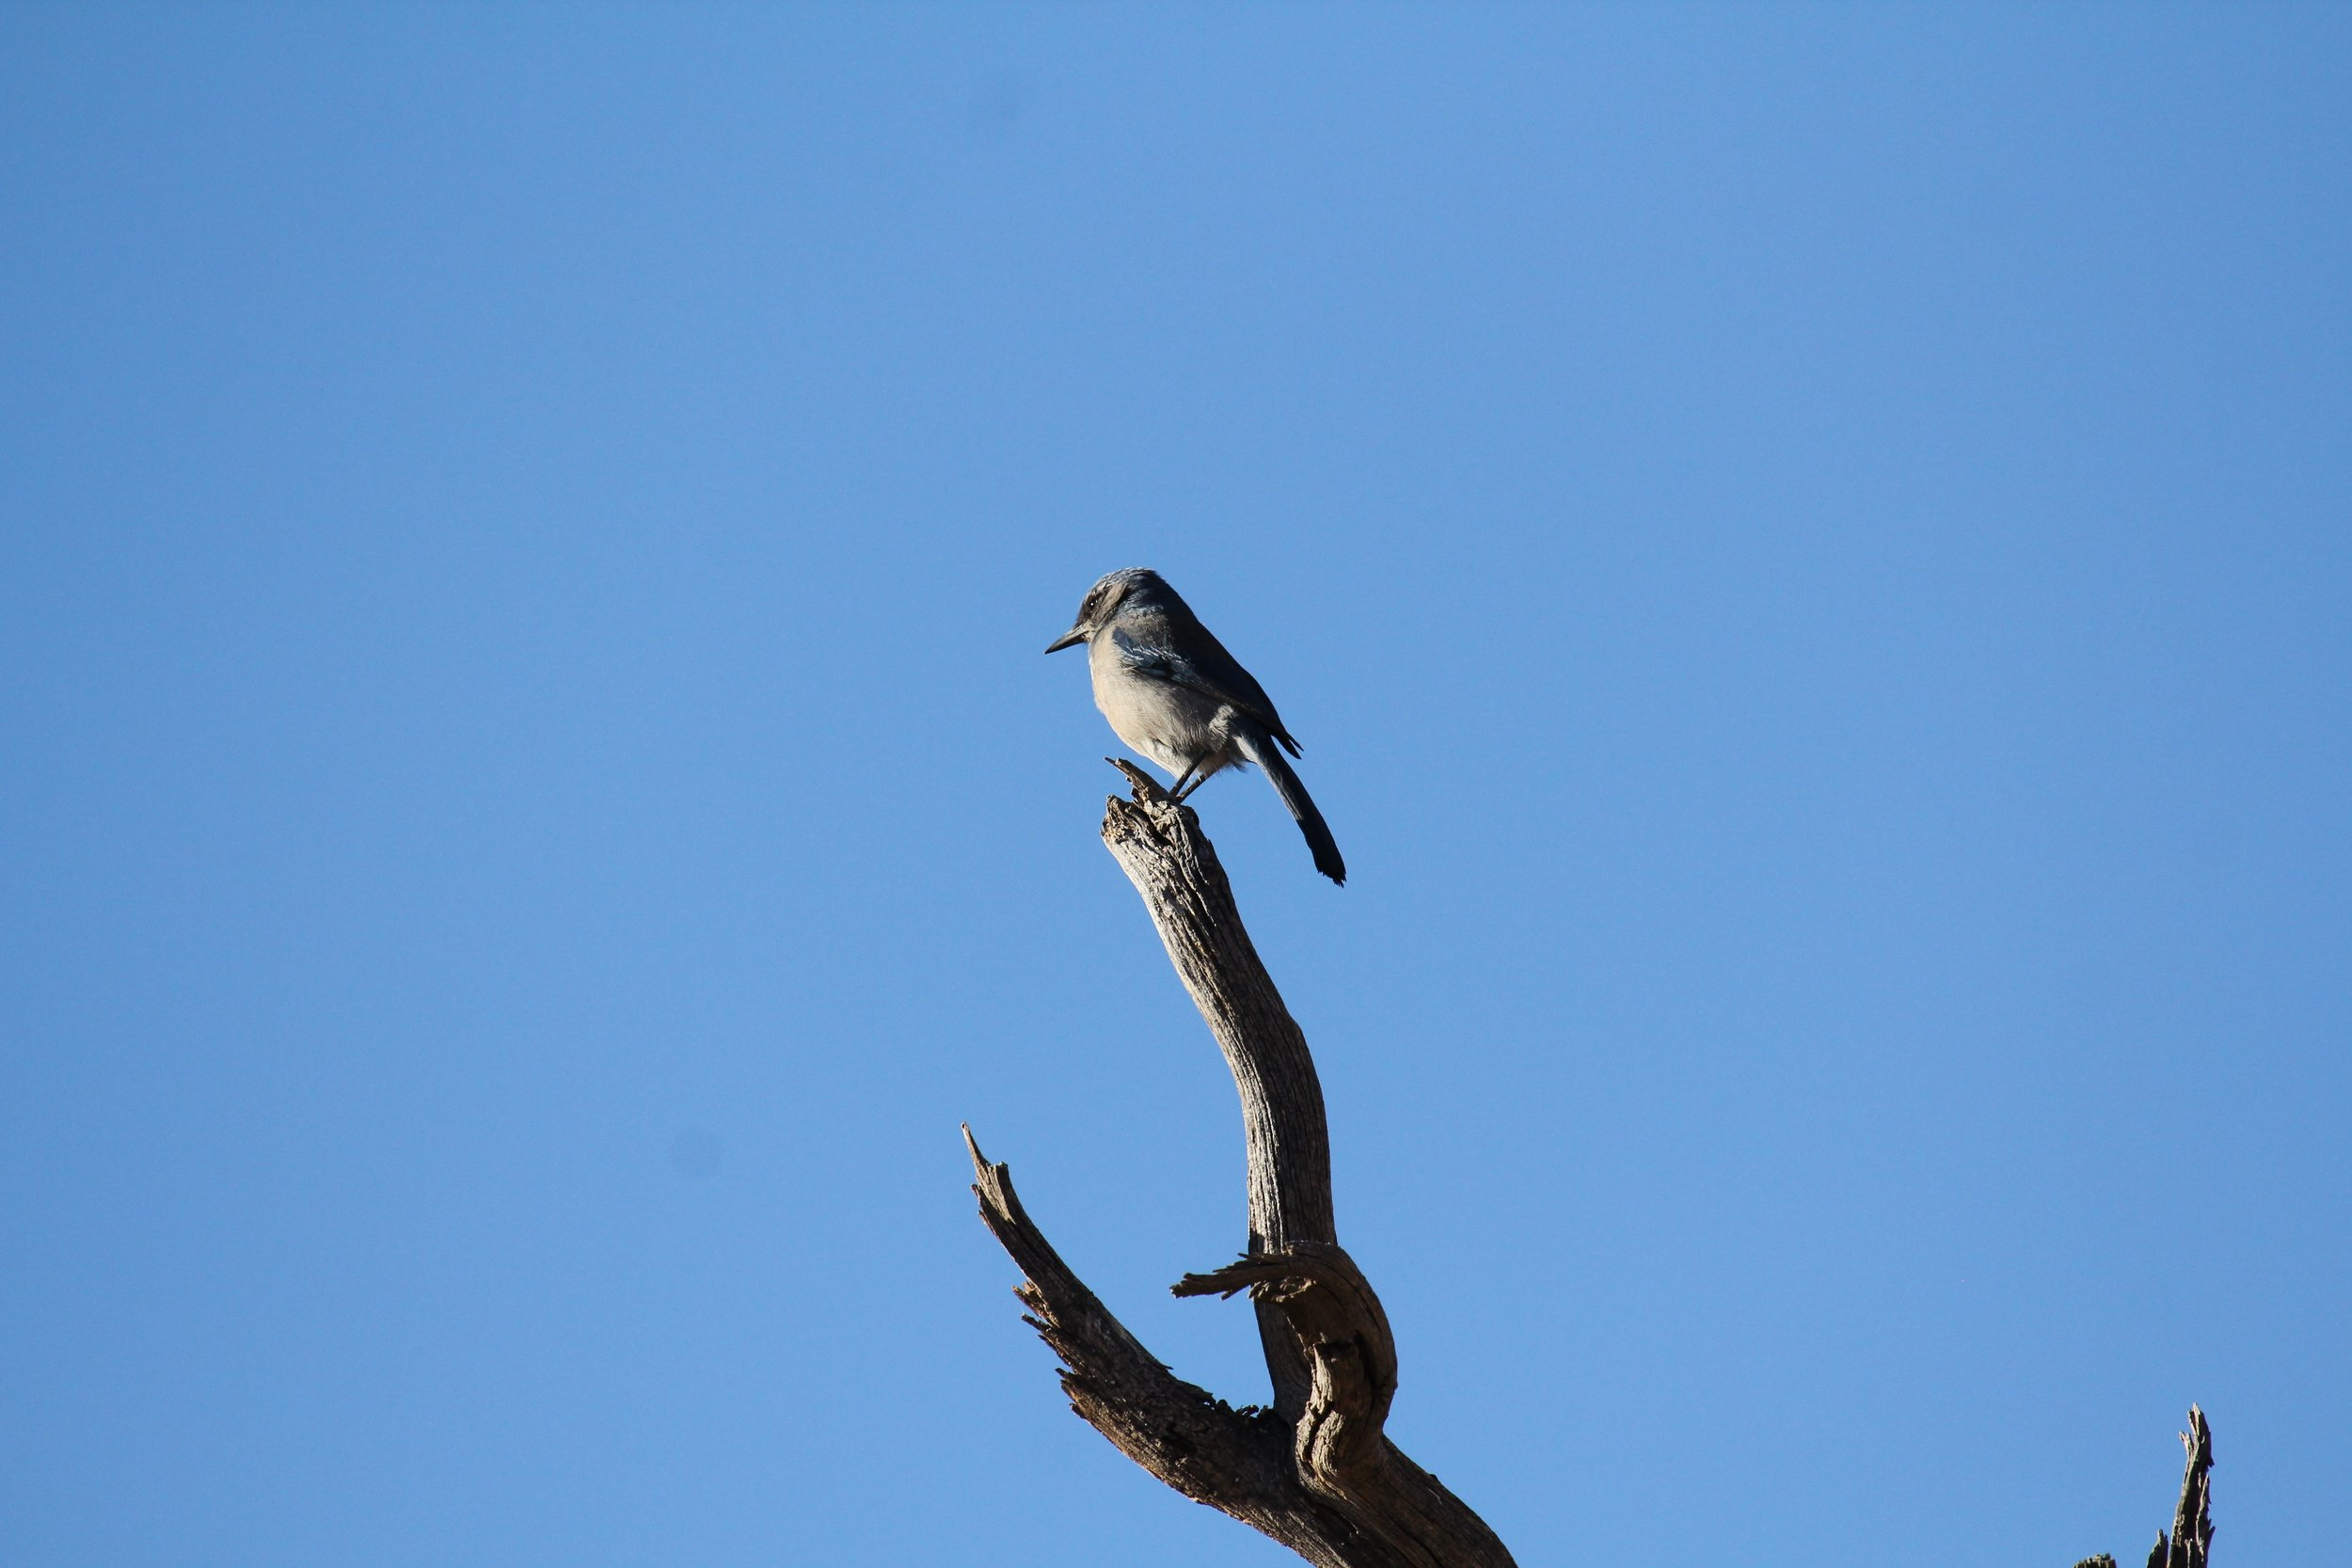 A California Scrub Jay ( Aphelocoma californica ) catching some rays in the Santa Monica Mountains.